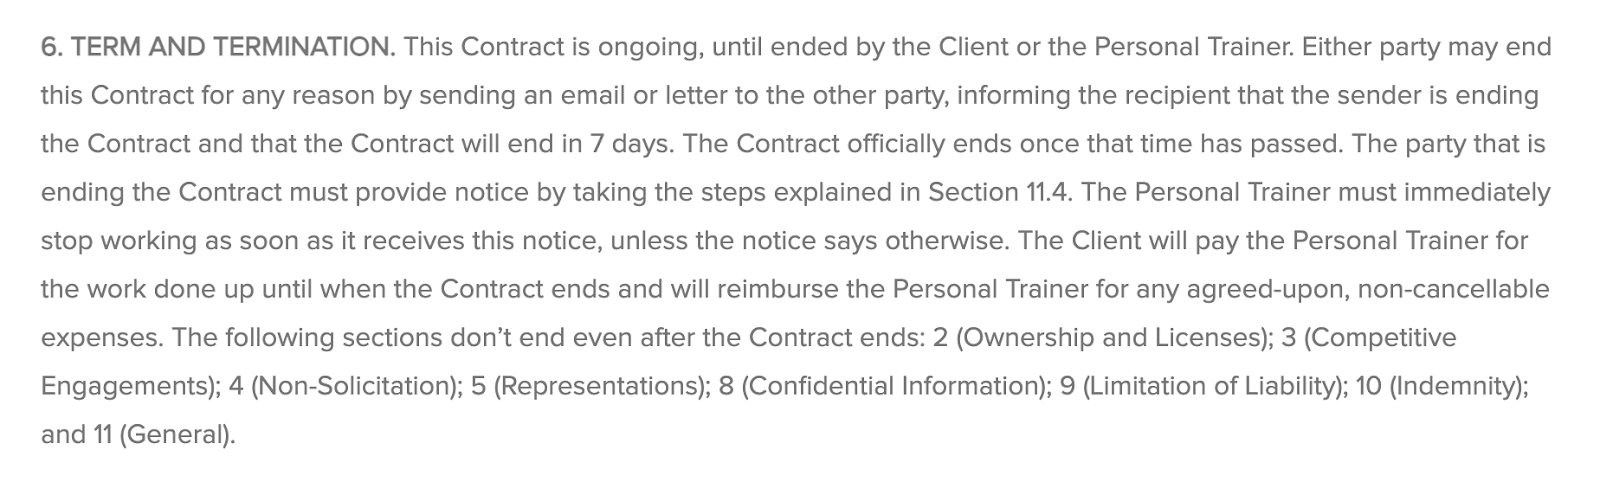 termination clause sample for personal trainer contract